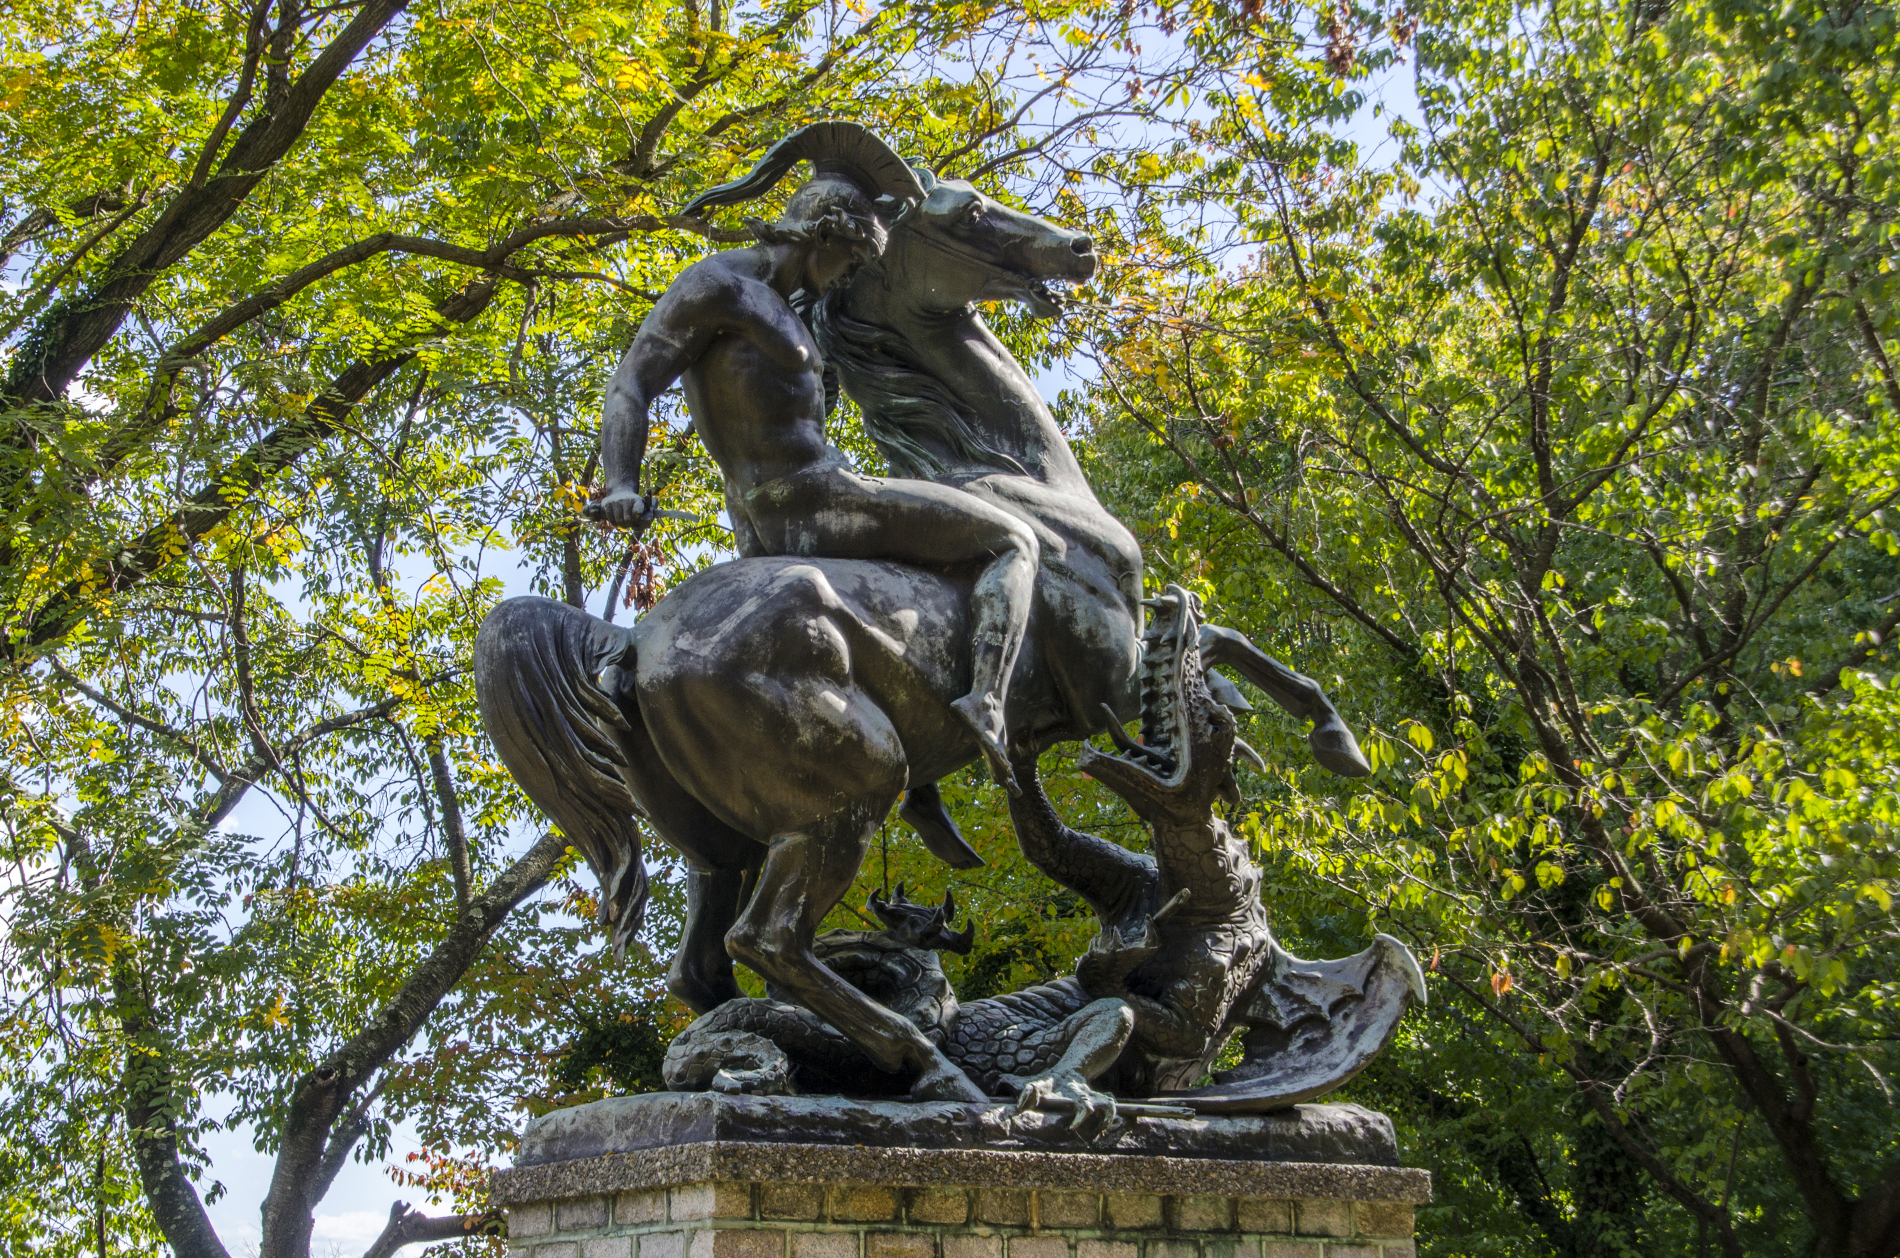 St George and the Dragon bronze sculpture in West Fairmount Park, surrounded by trees and sky